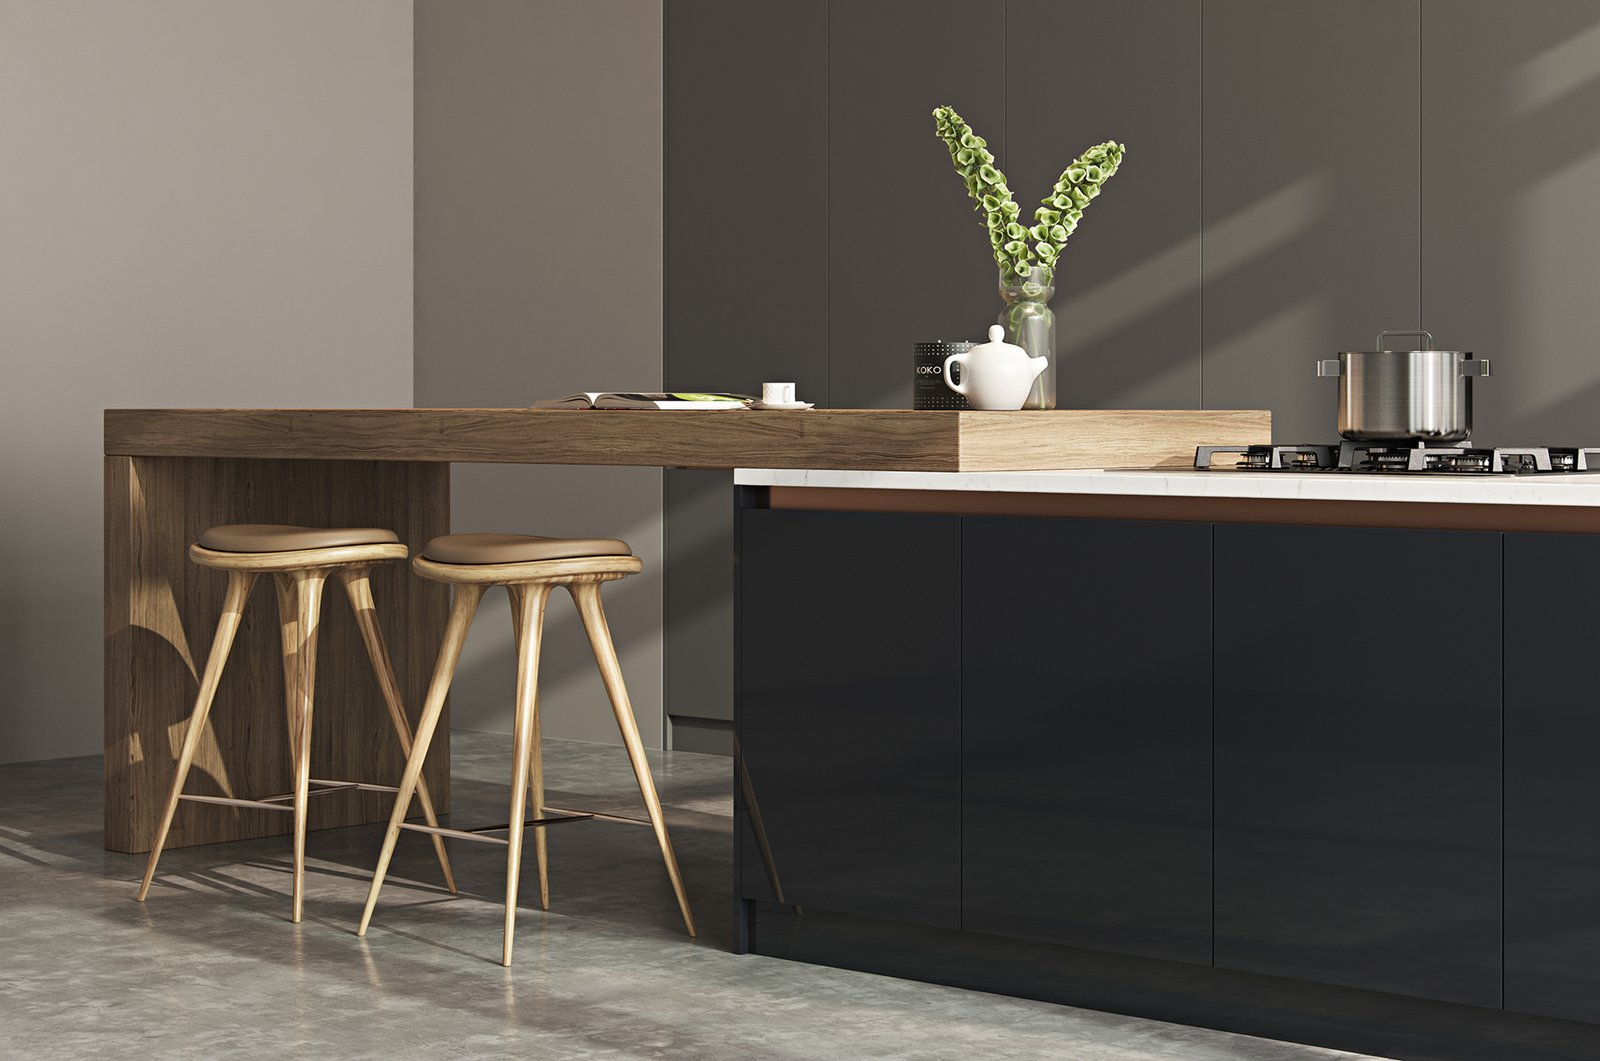 Tagged: Kitchen, Laminate Cabinet, Wood Cabinet, Marble Counter, Concrete Floor, and Range.   from Kitchen//Extension